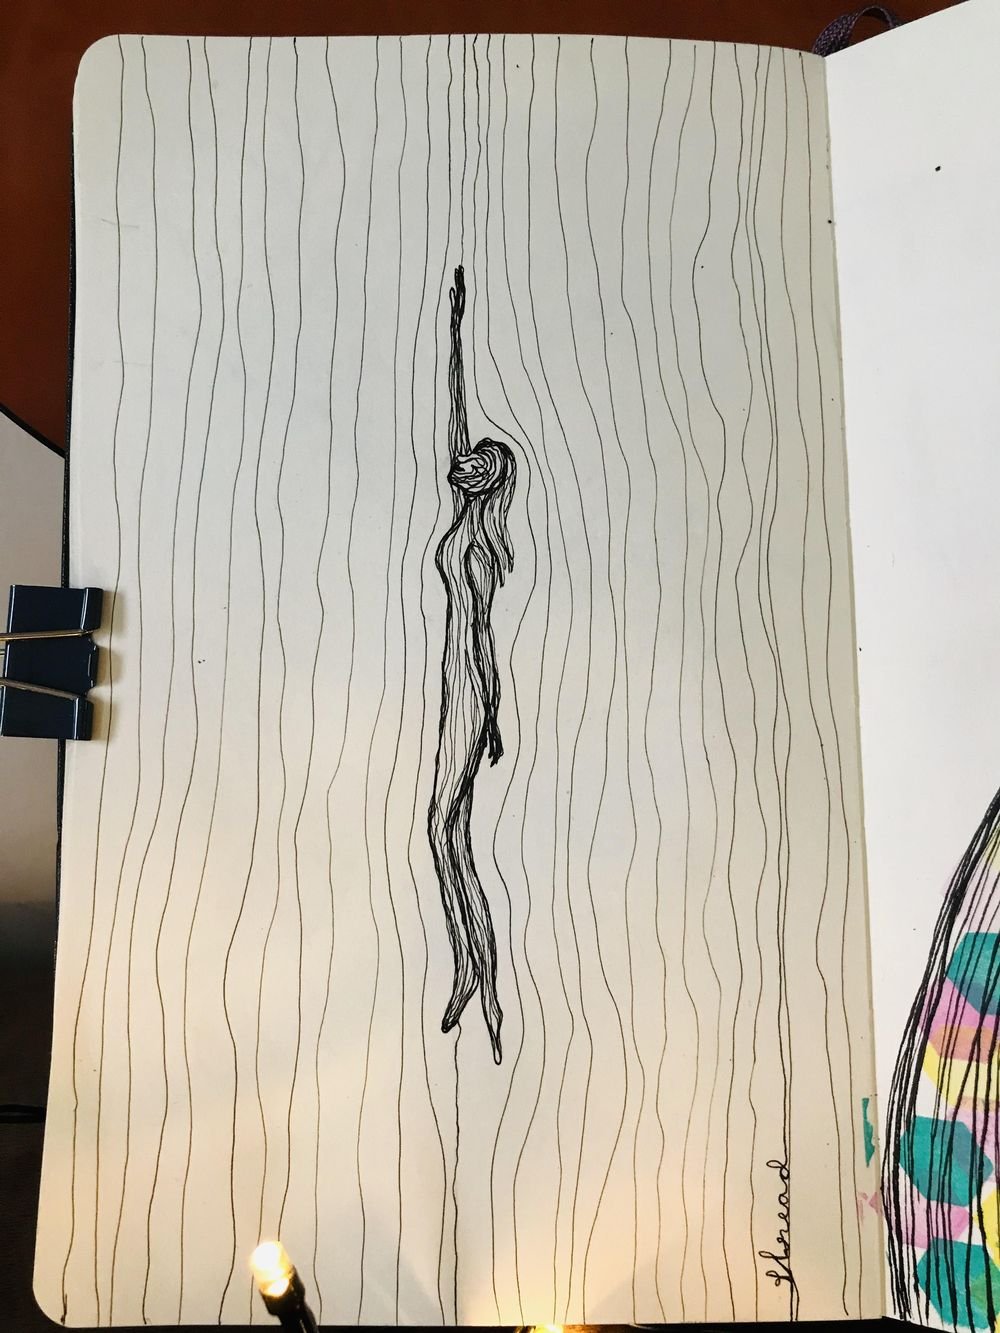 14 drawings challenge - image 10 - student project